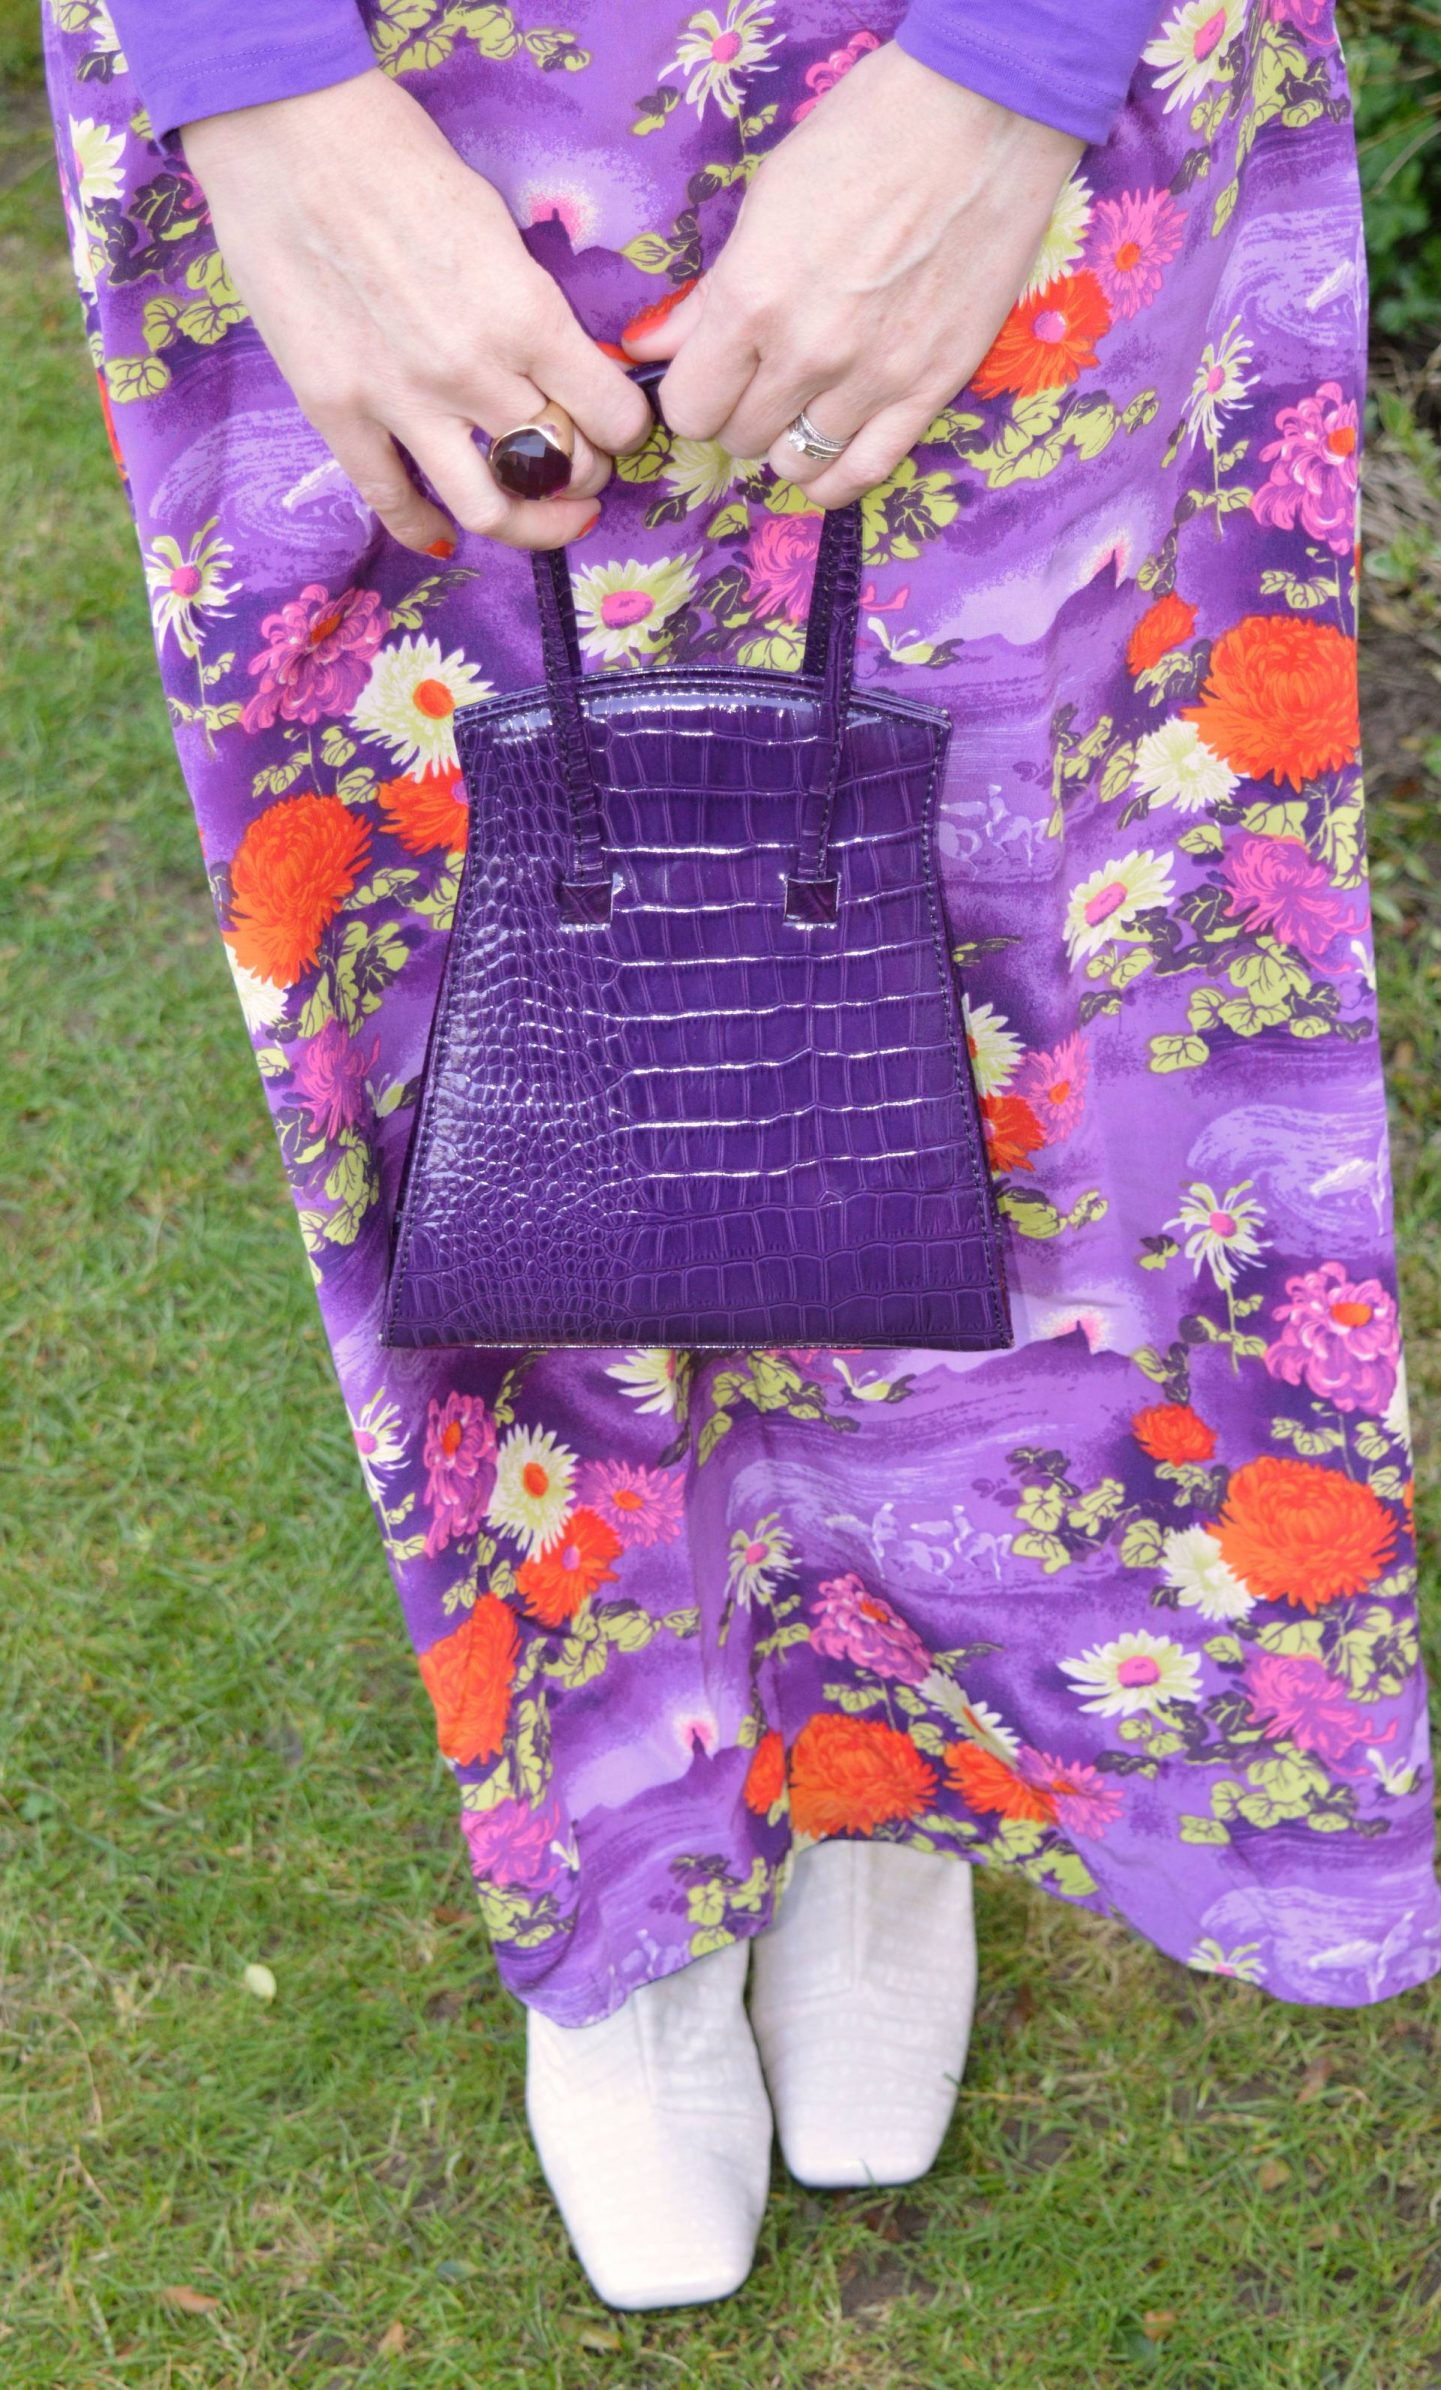 purple mock croc bag